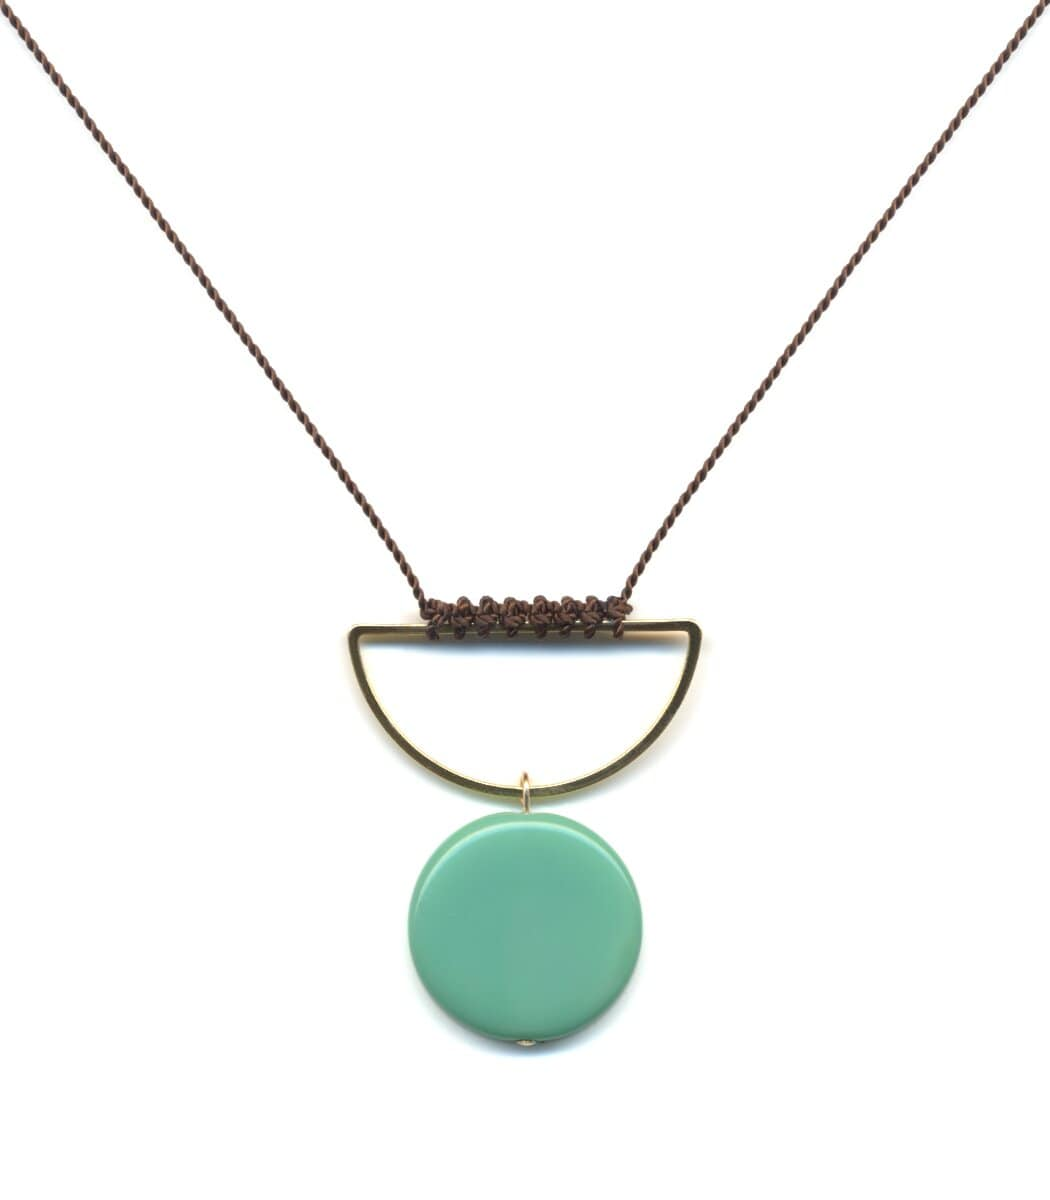 Irk Jewelry I. Ronni Kappos N1844 Water Bowl Necklace